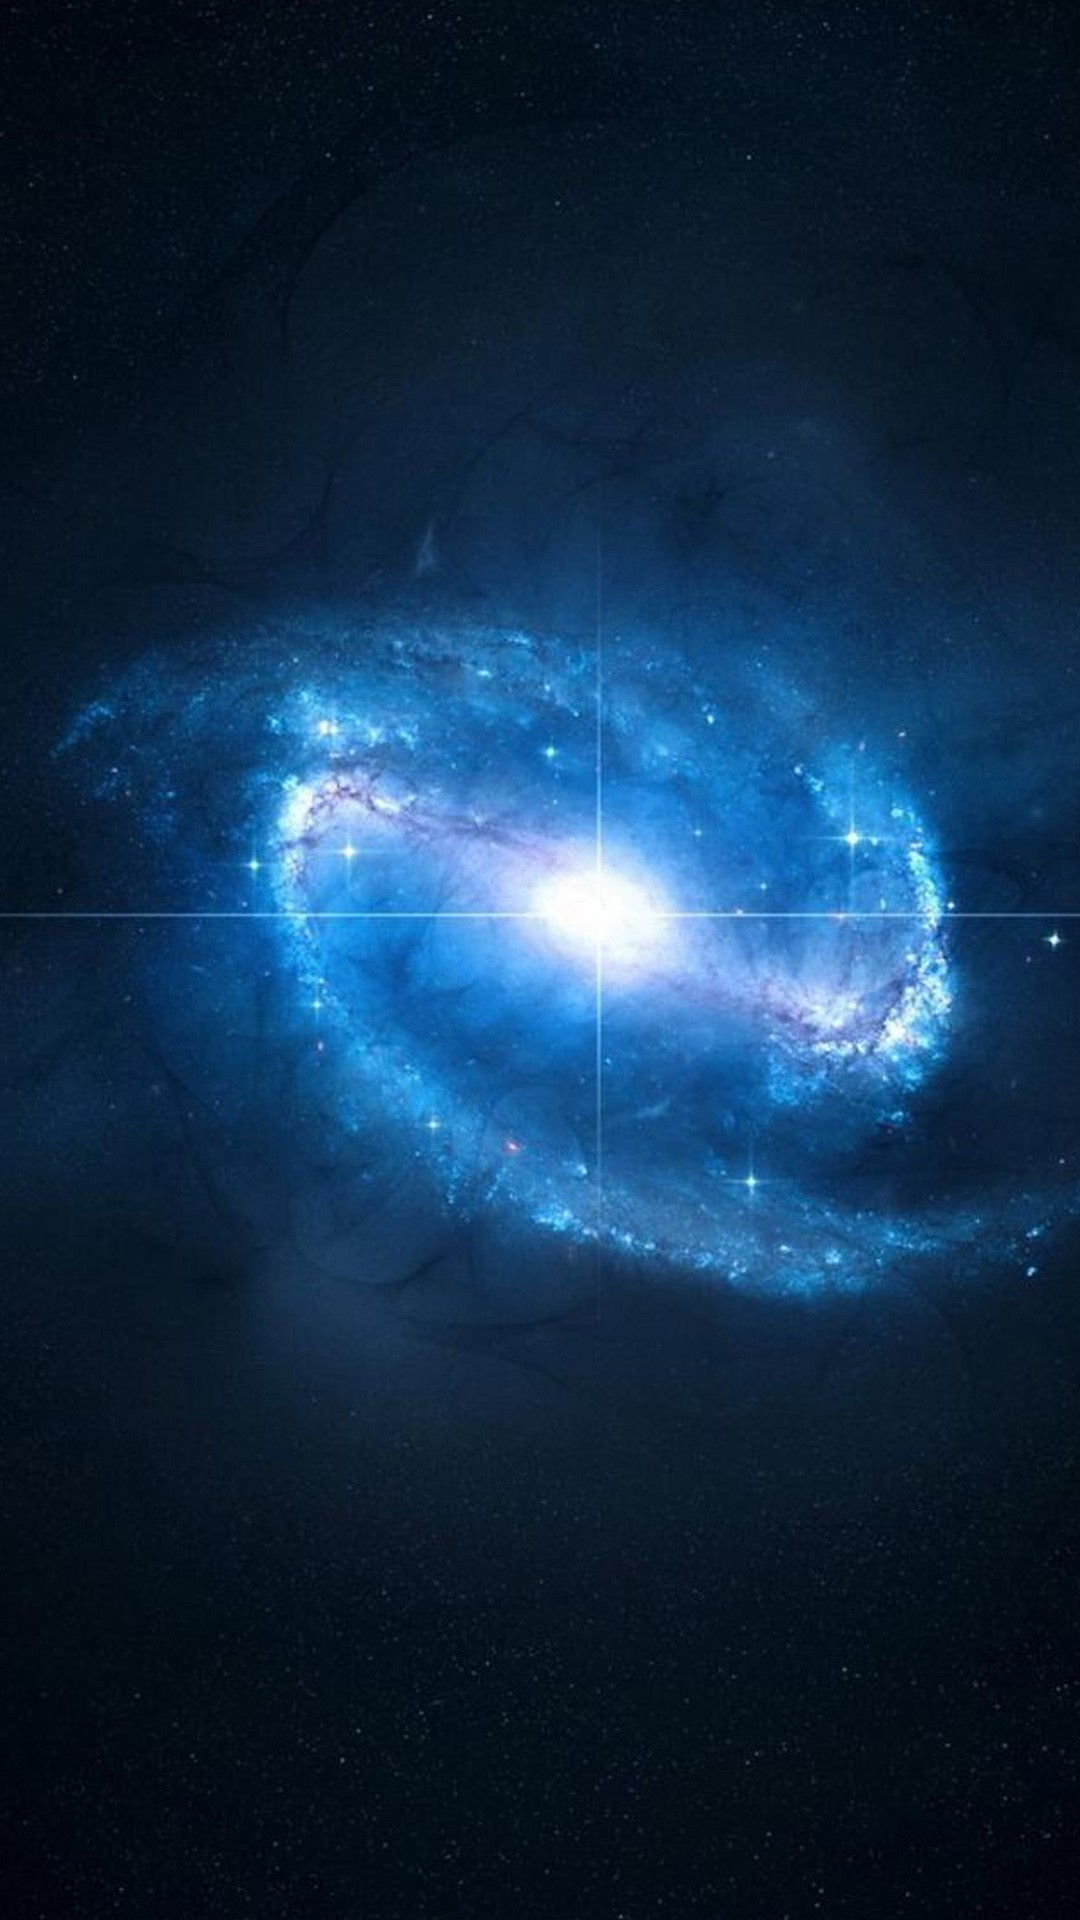 blue galaxy wallpaper  u00b7 u2460 download free amazing full hd